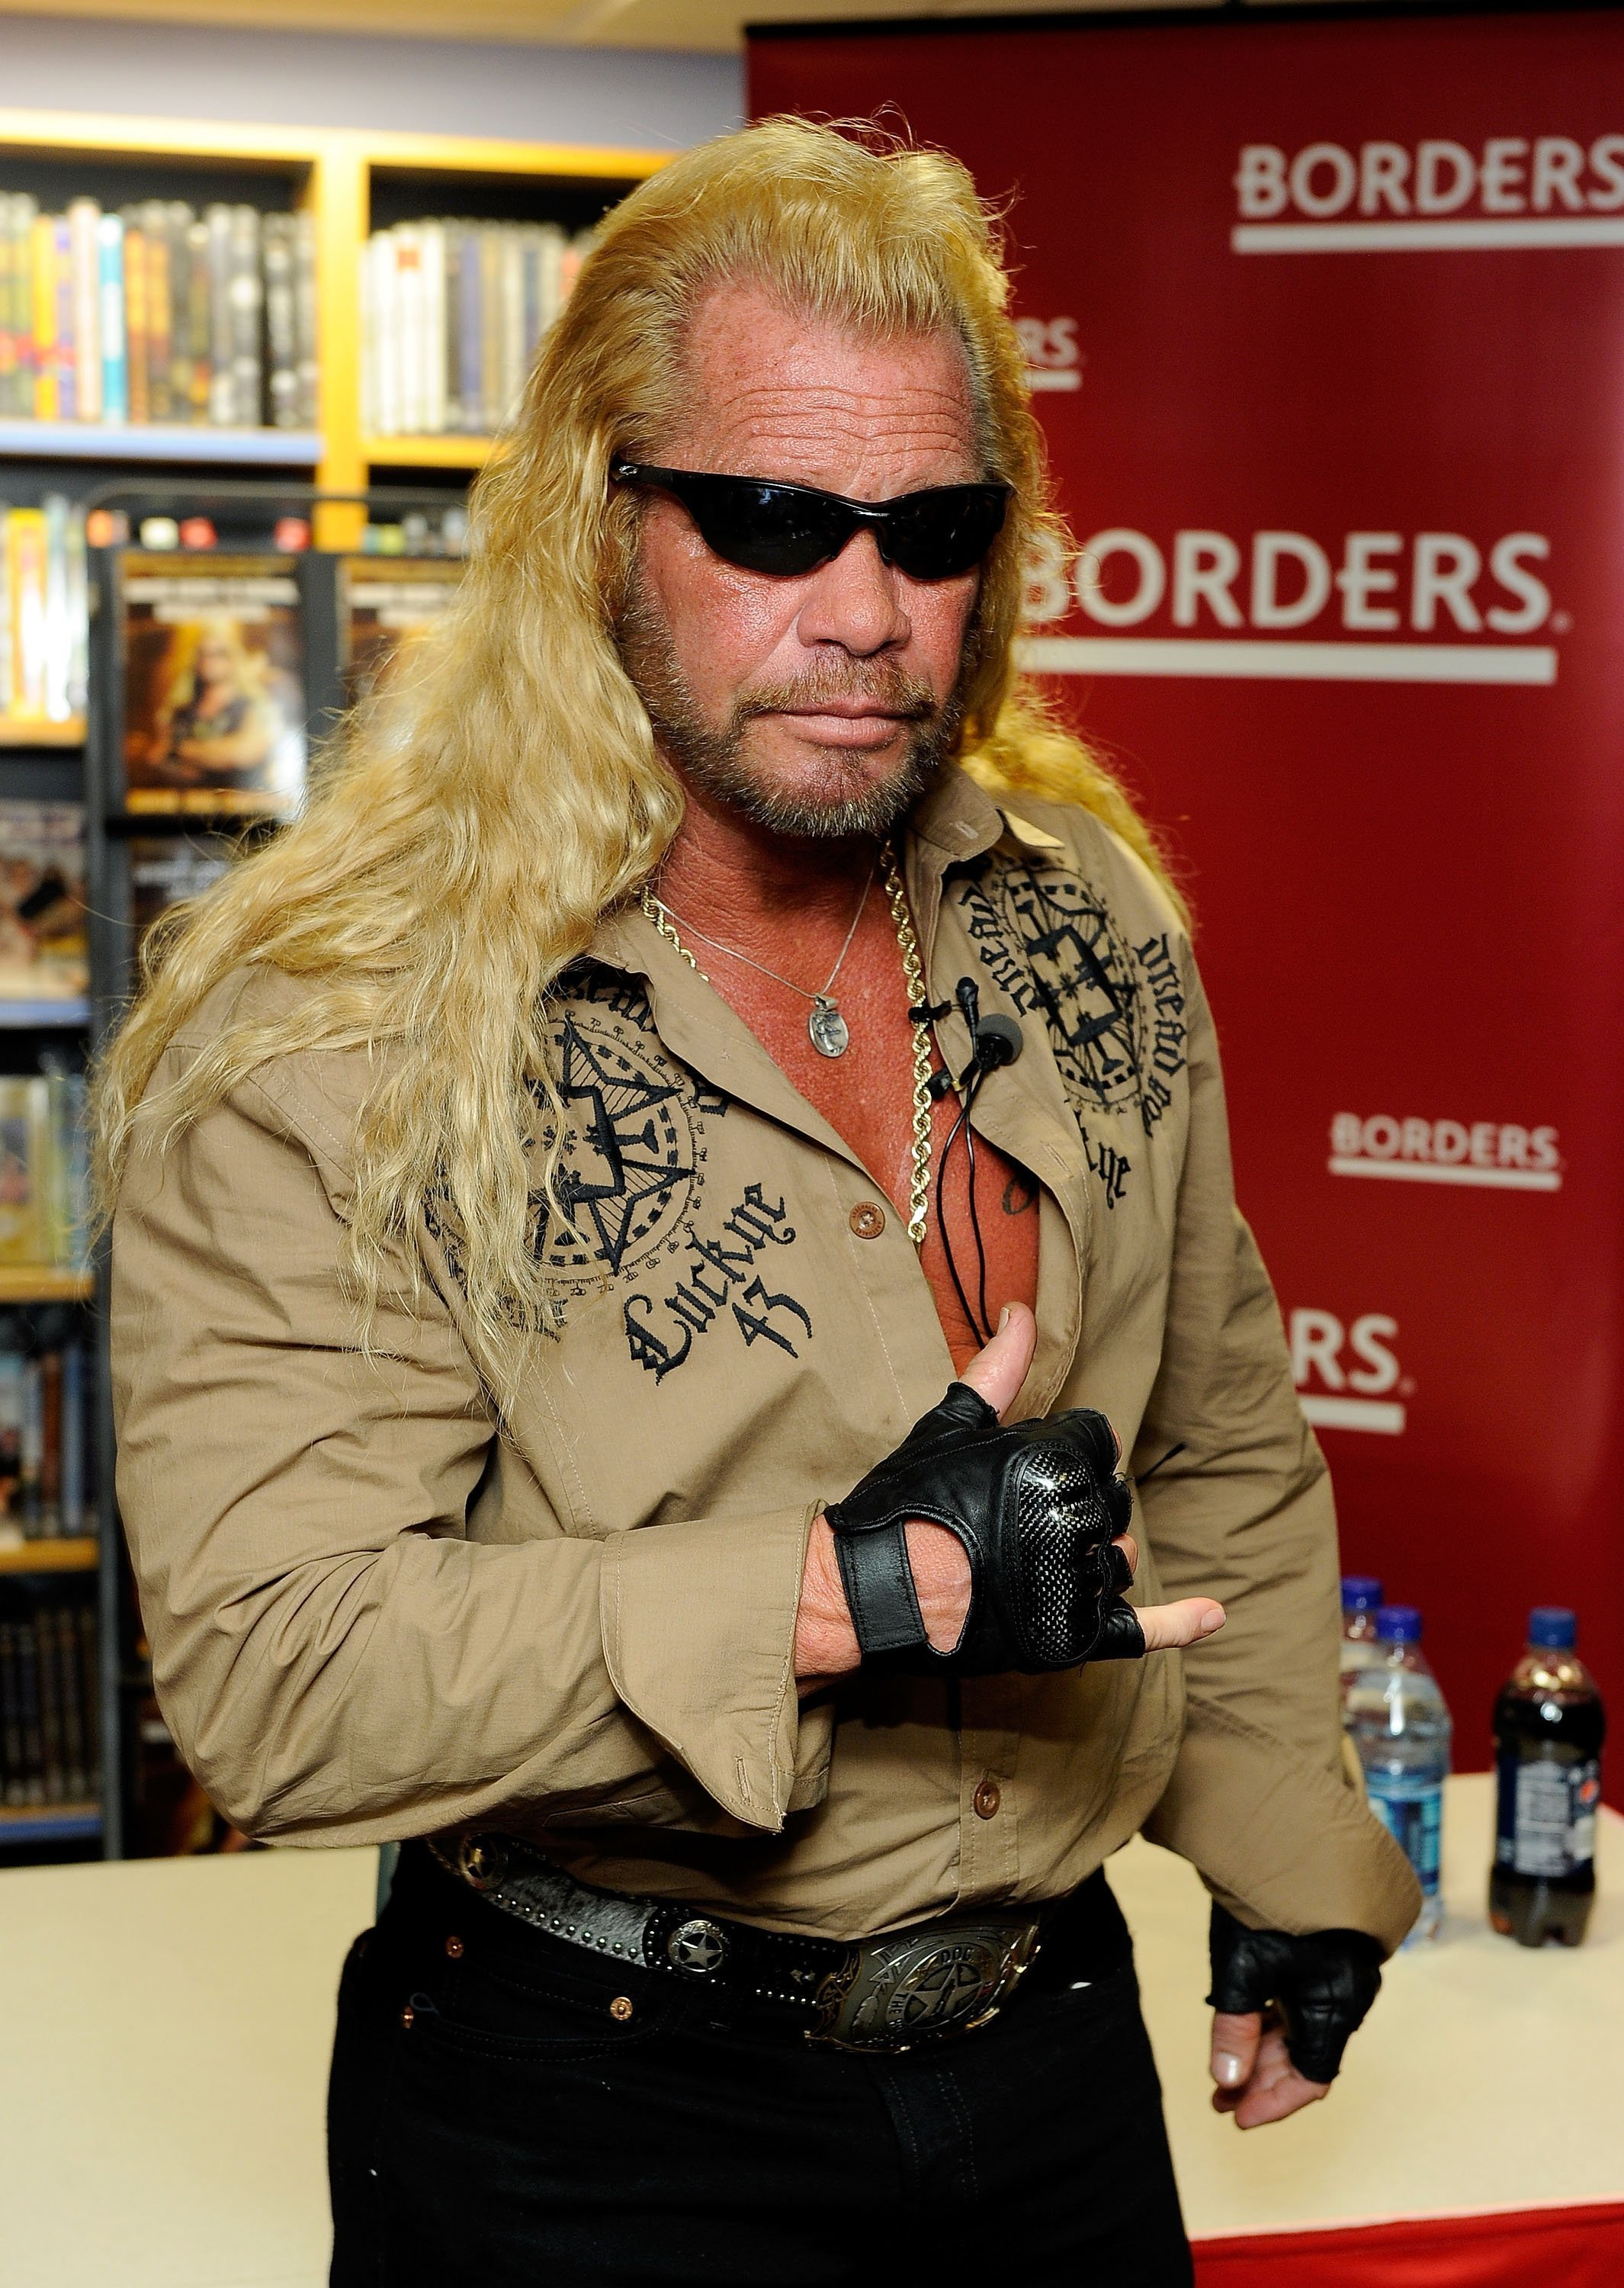 Duane Dog Chapman on March 19, 2010 in New York City | Source: Getty Images